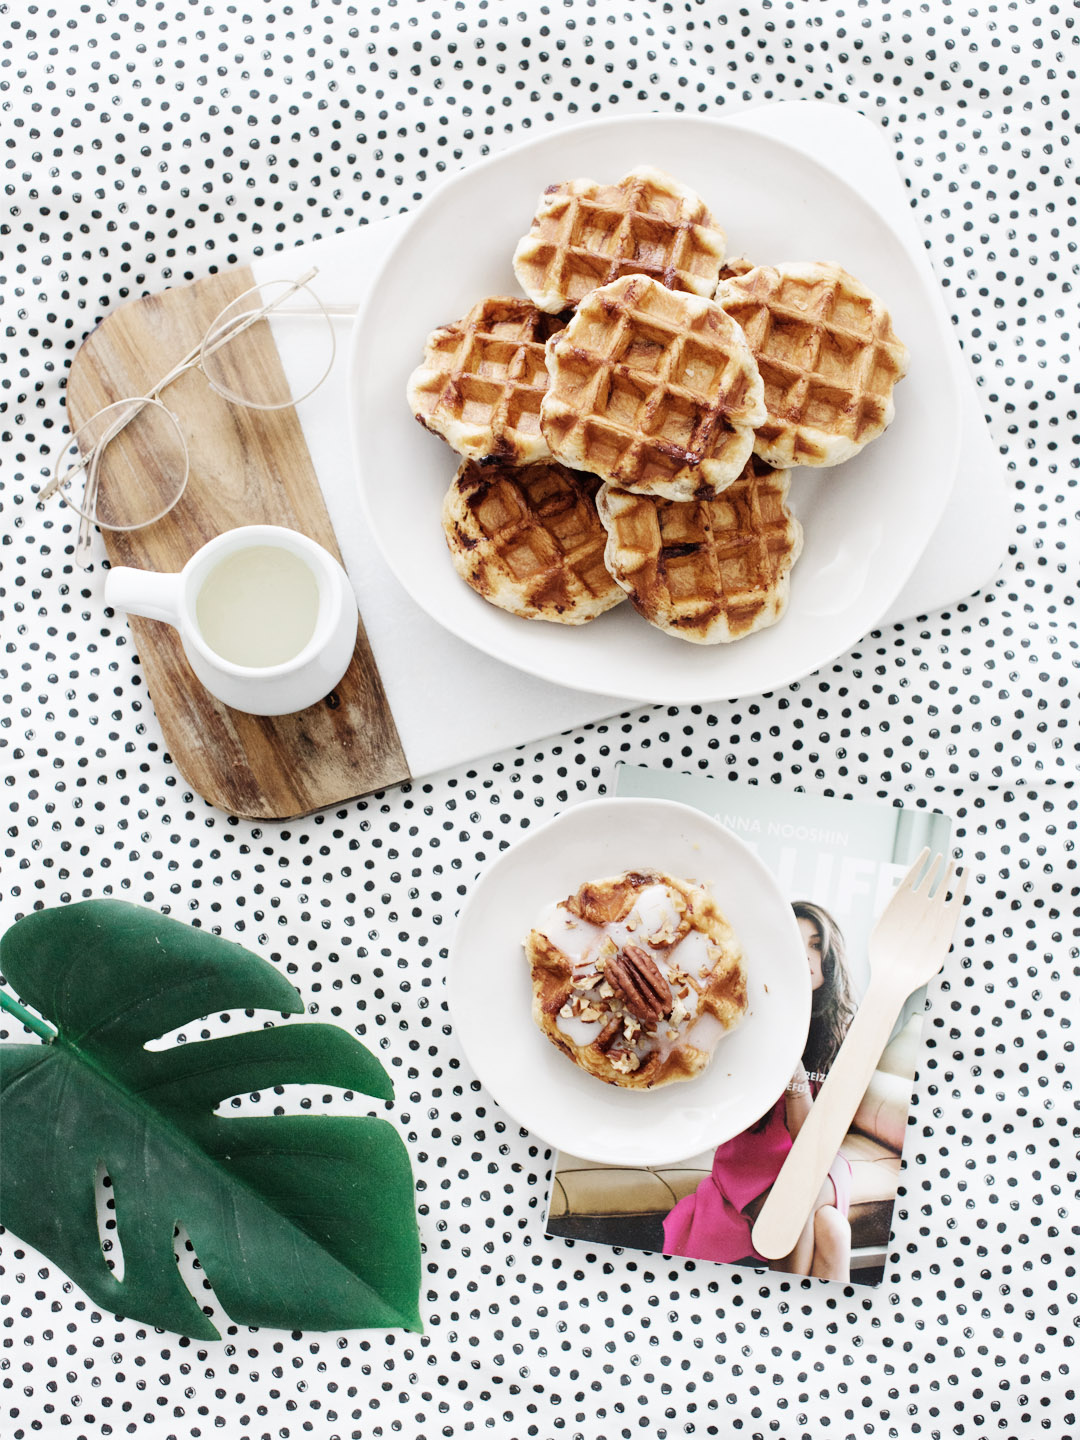 Cinnamon Roll Wafels